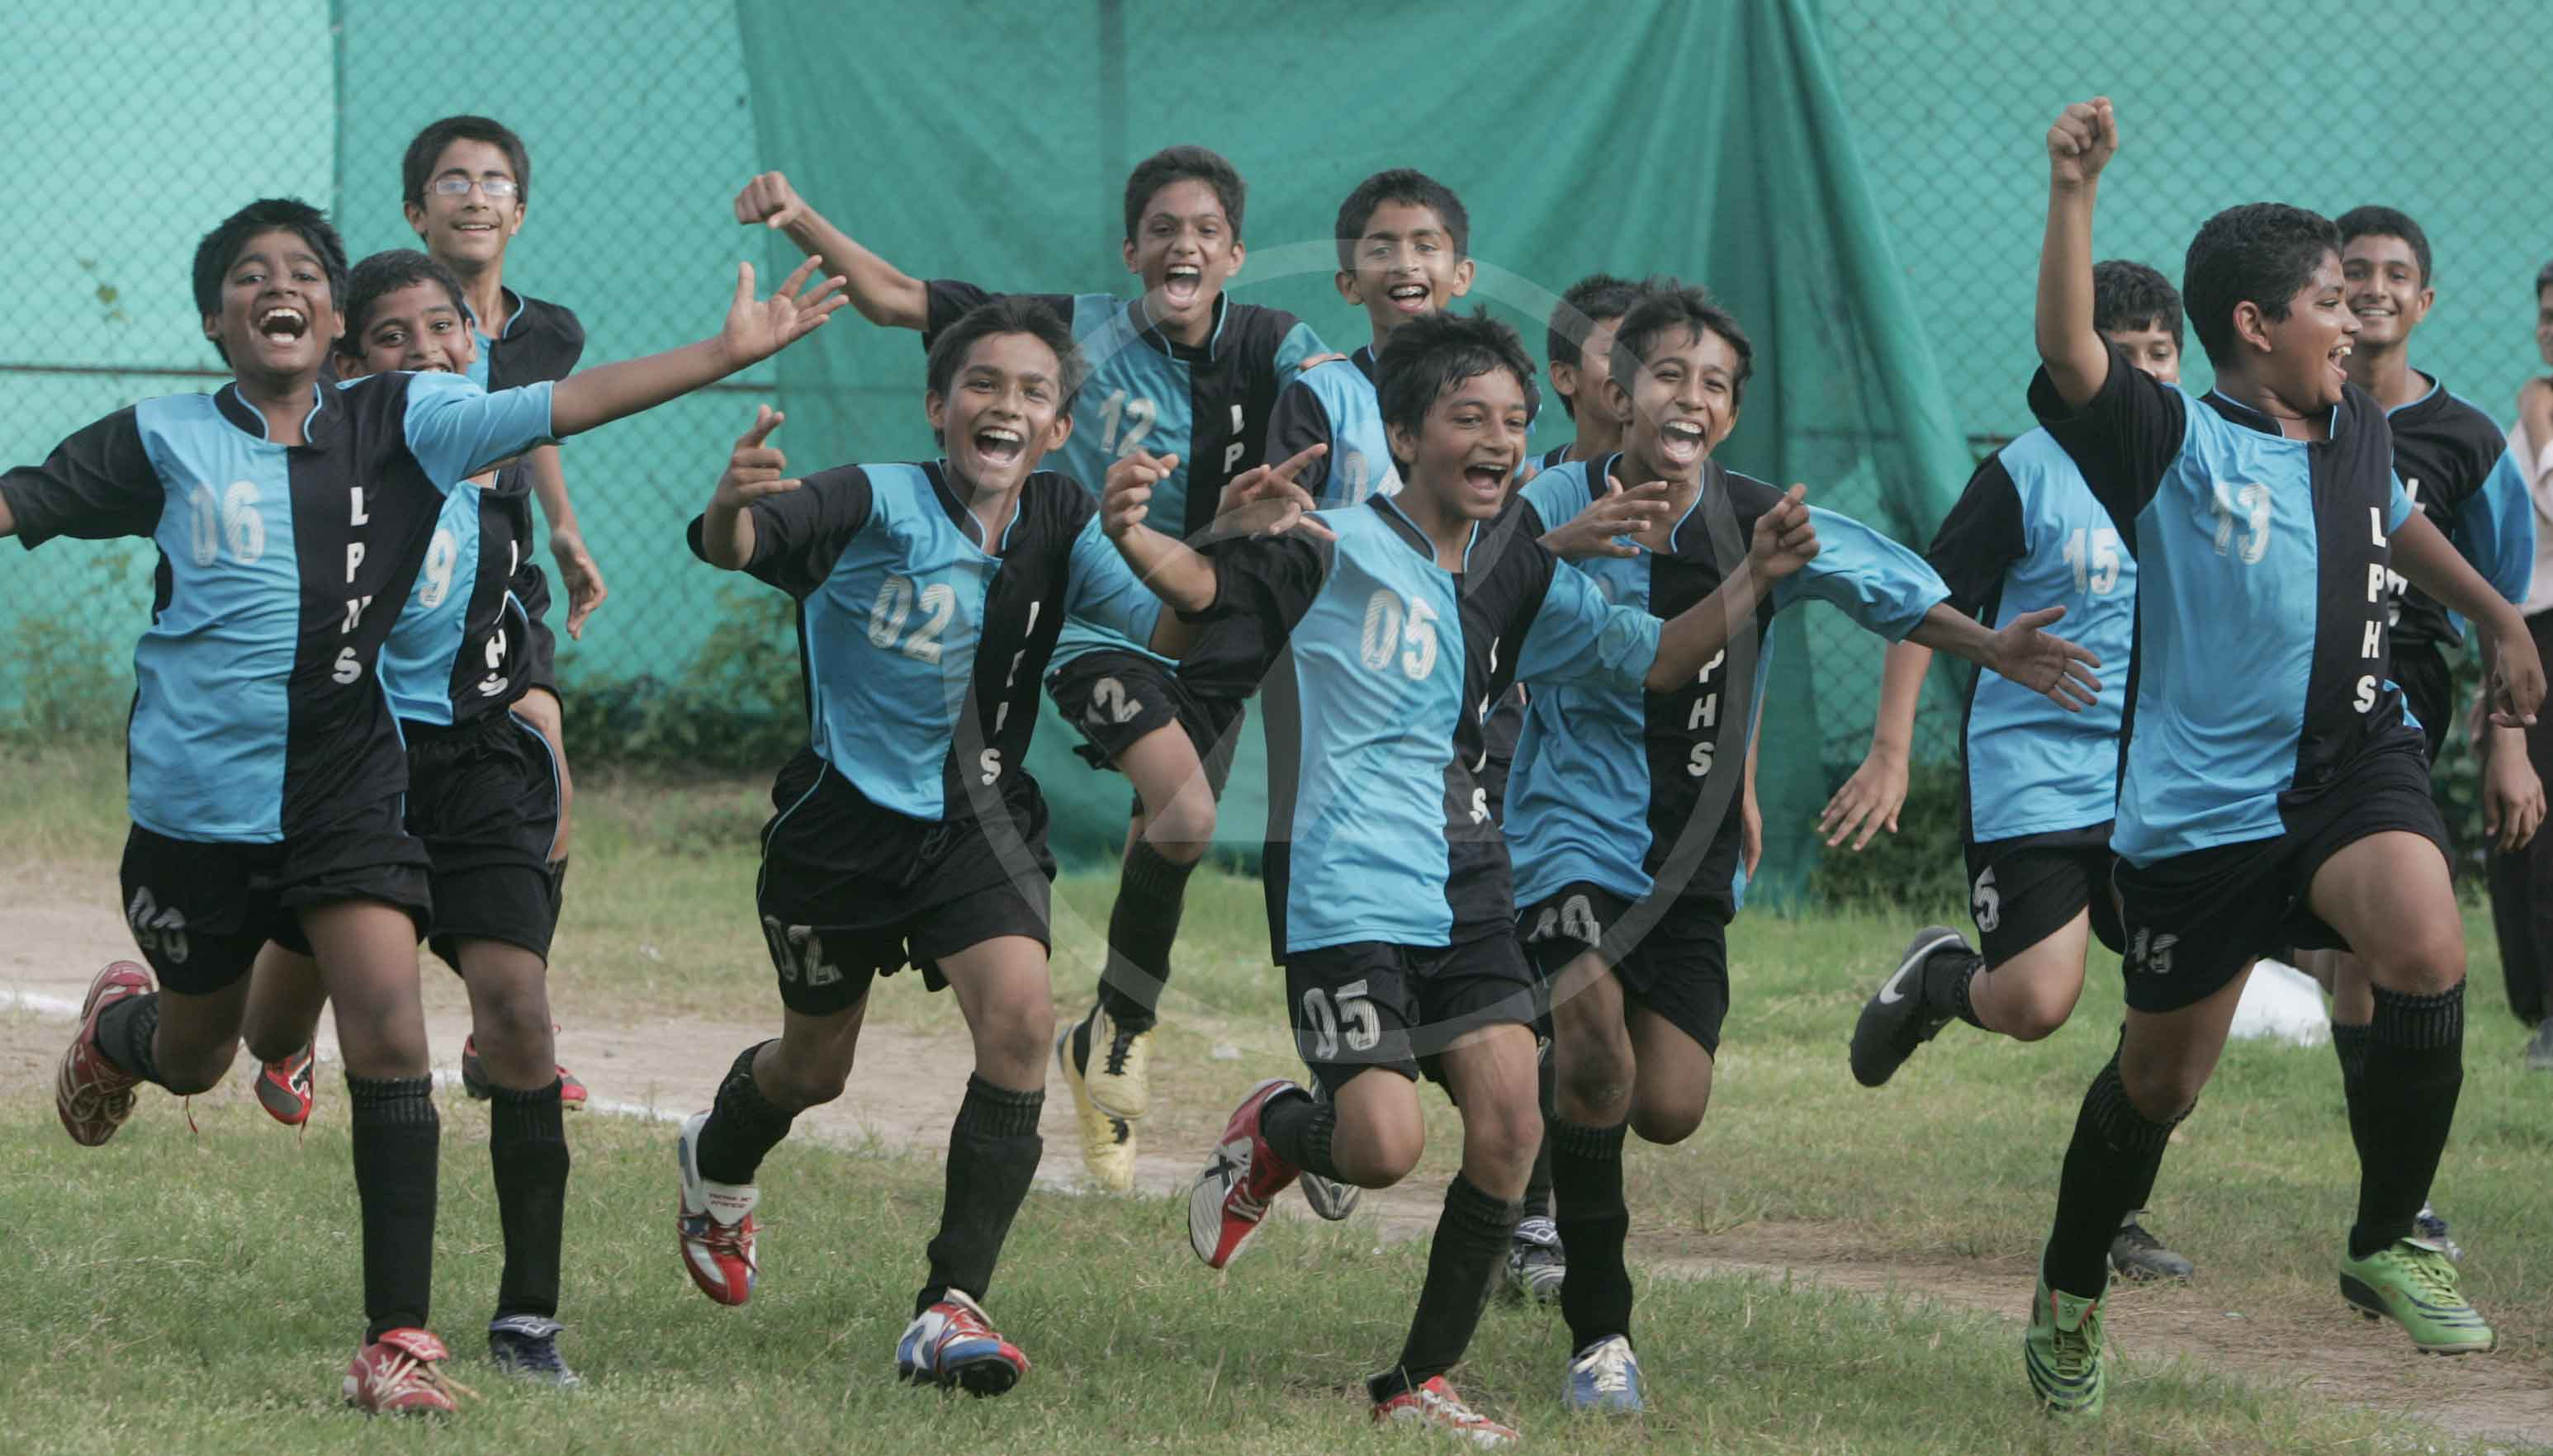 The Art of Grassroots Development